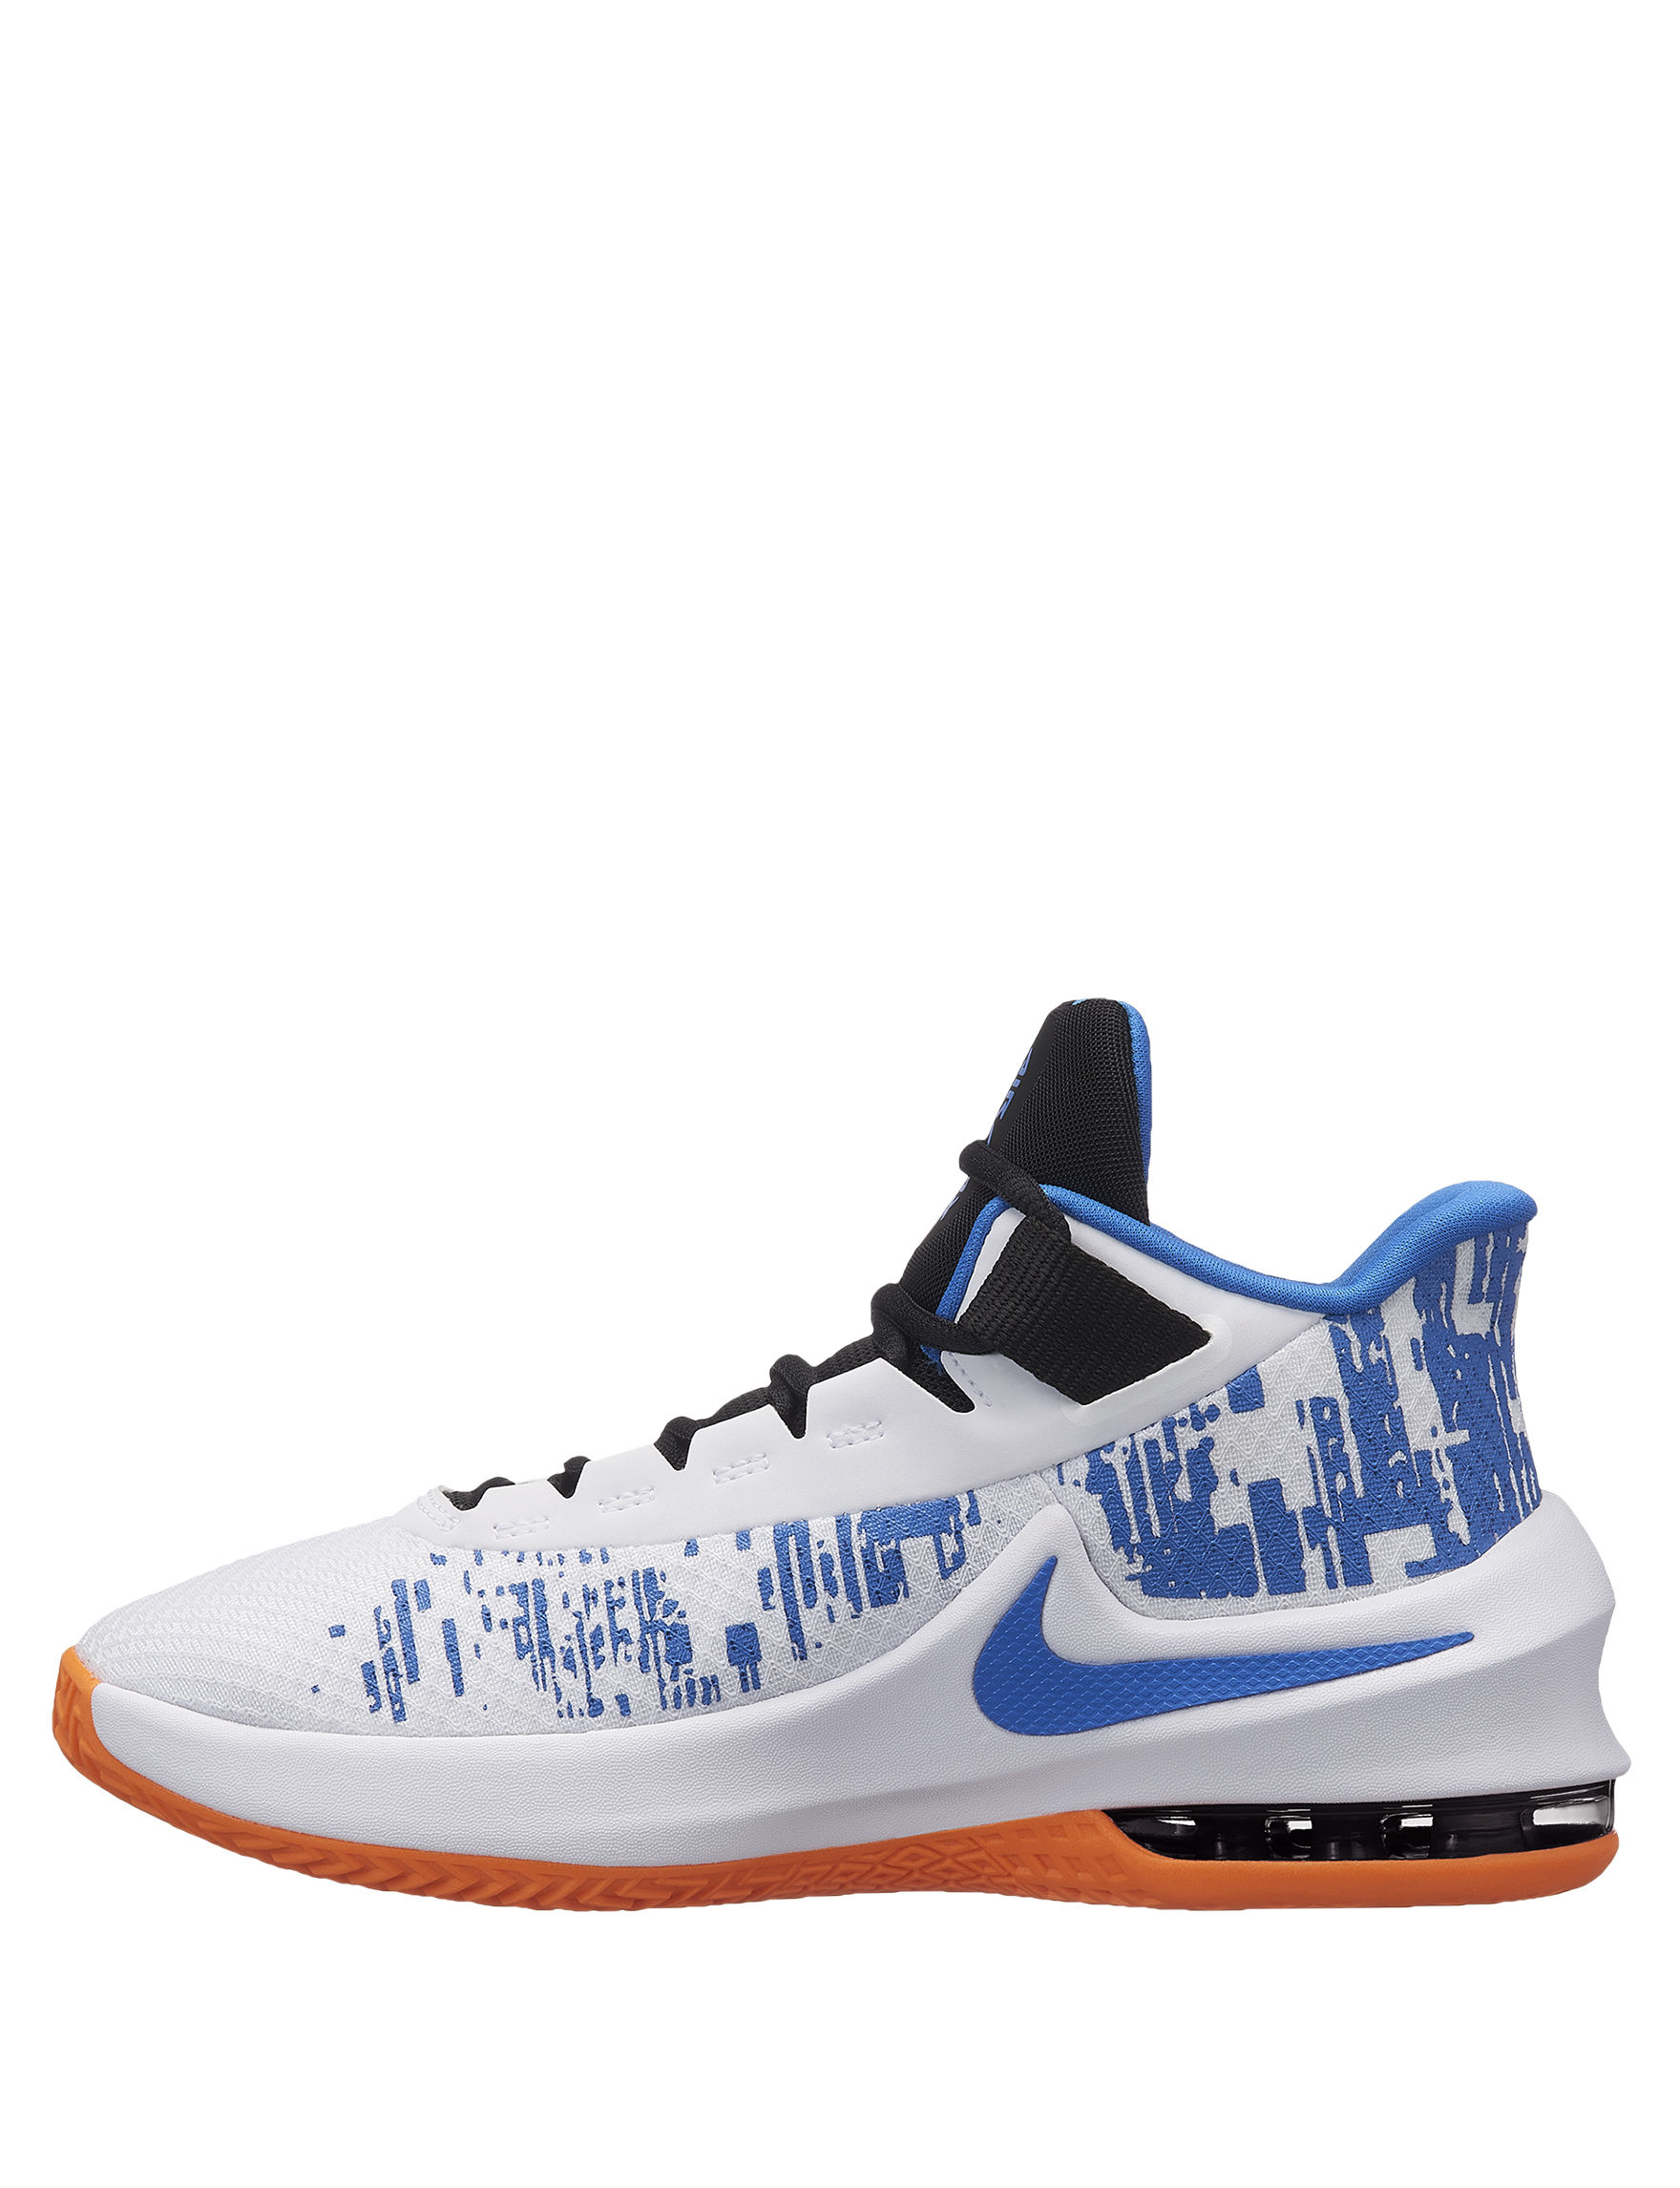 7ccfcfa579 Nike Air Max Infuriate 2 Mid Basketball Shoes - Boys 4-7 | Stage Stores